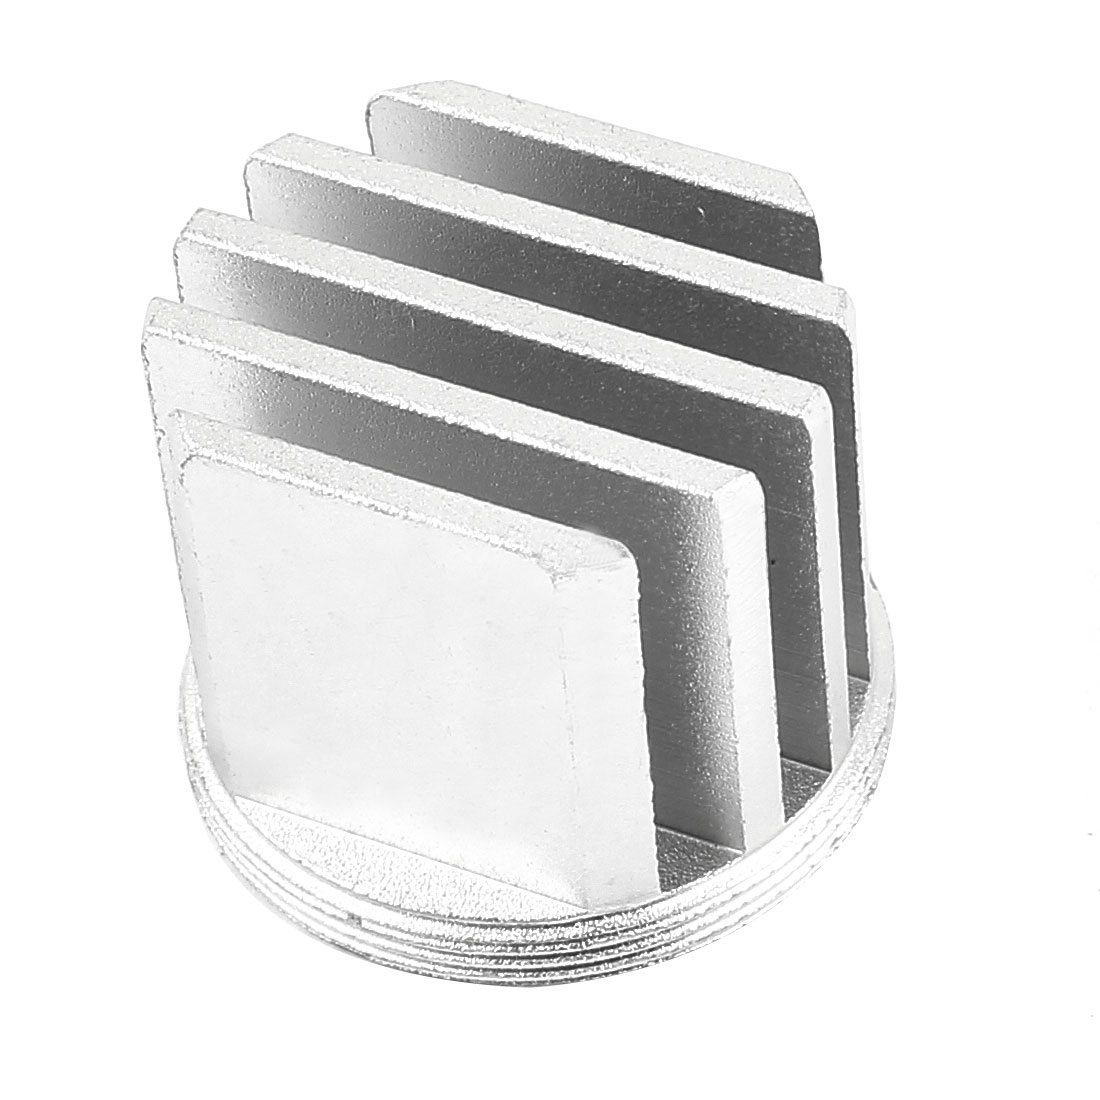 37mm x 30mm Cylinder 3W High Power LED Heatsink Aluminium Cooling Fin